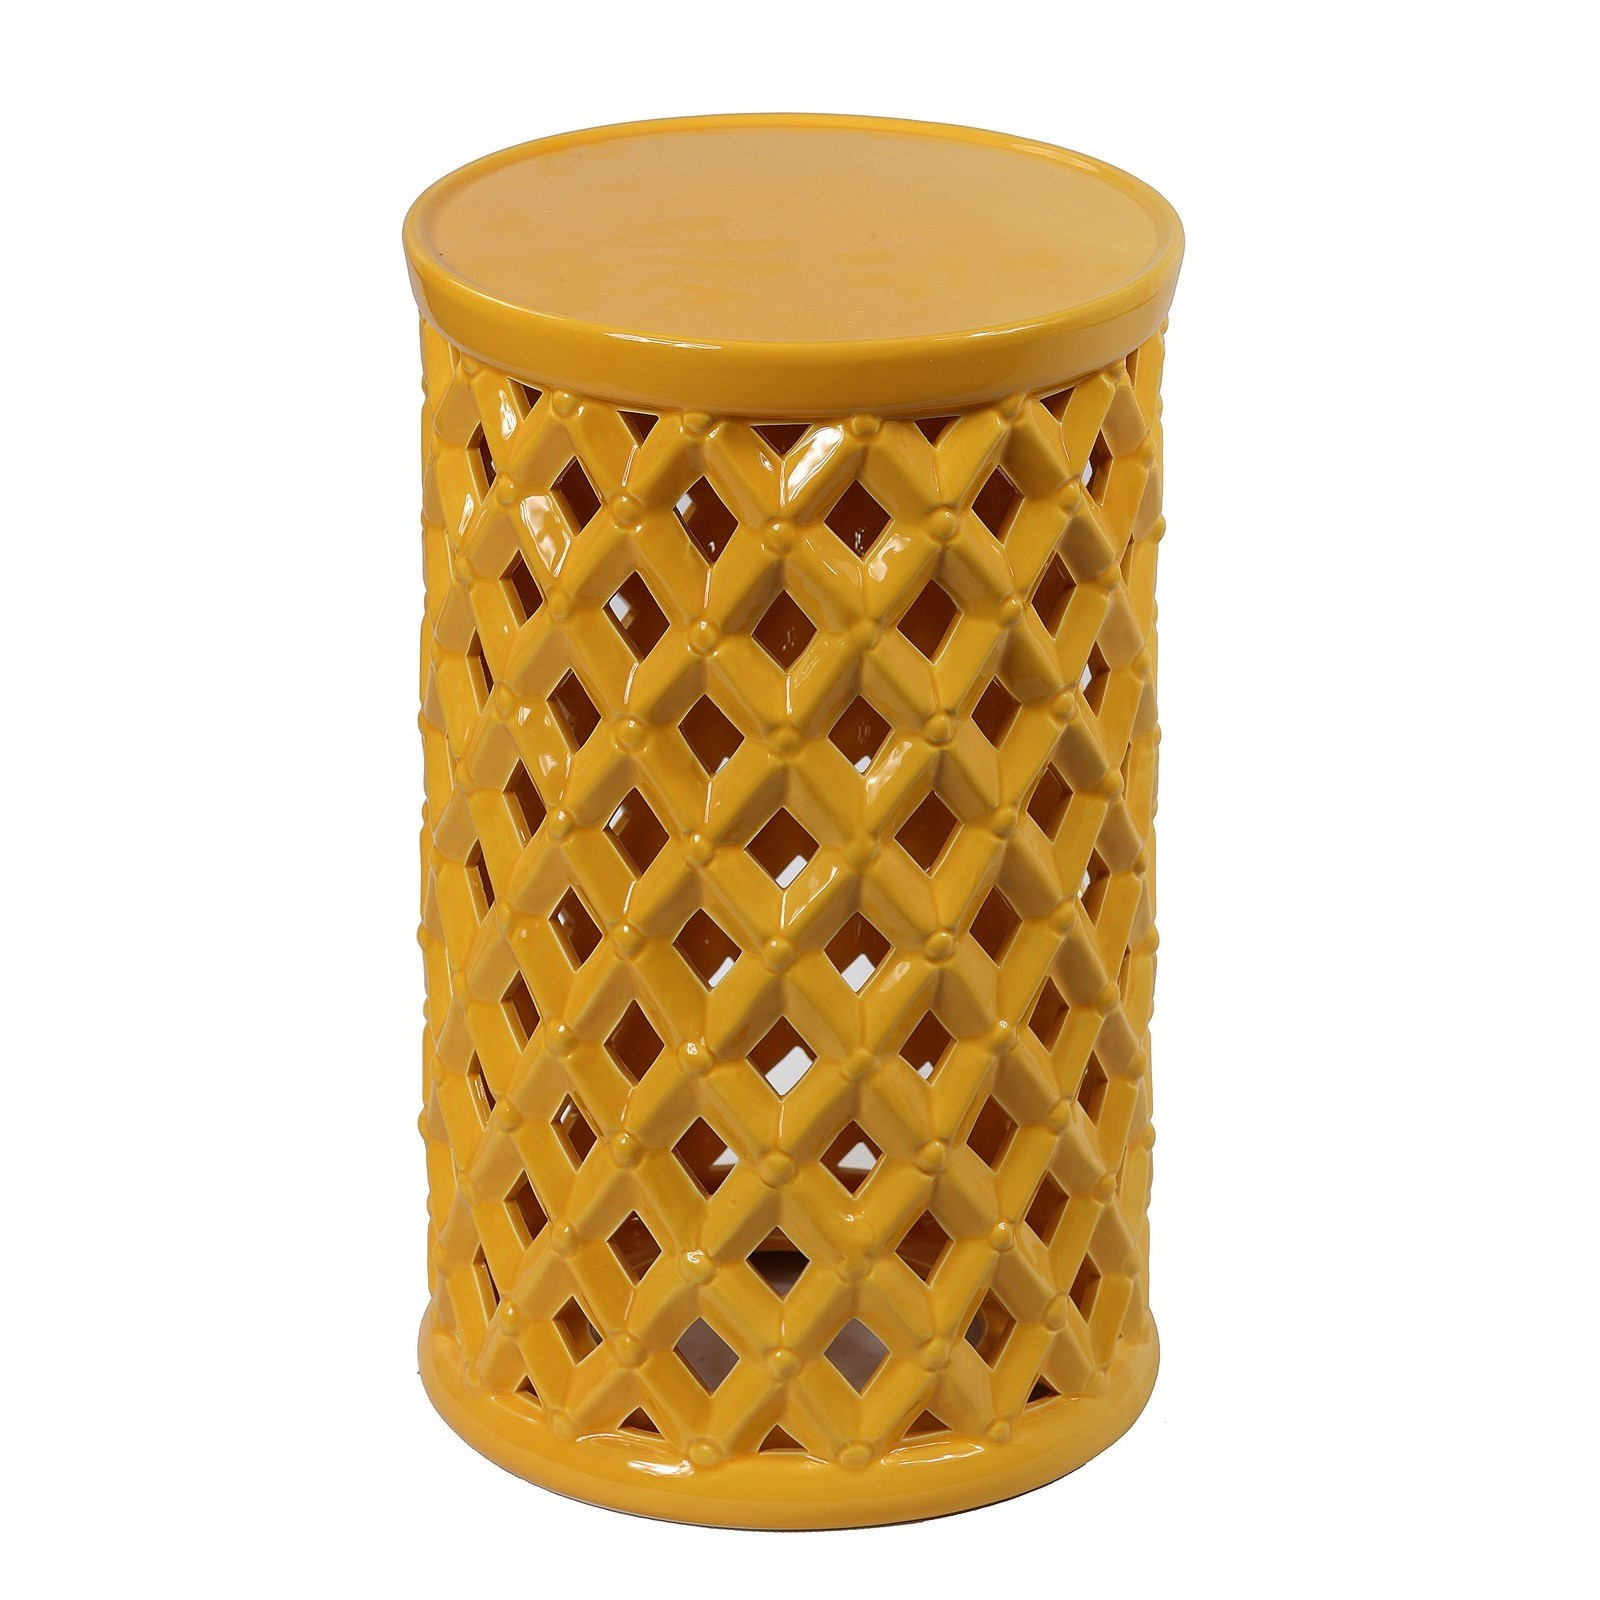 Incredible garden stool for decorating interior ideas with ceramic garden stool